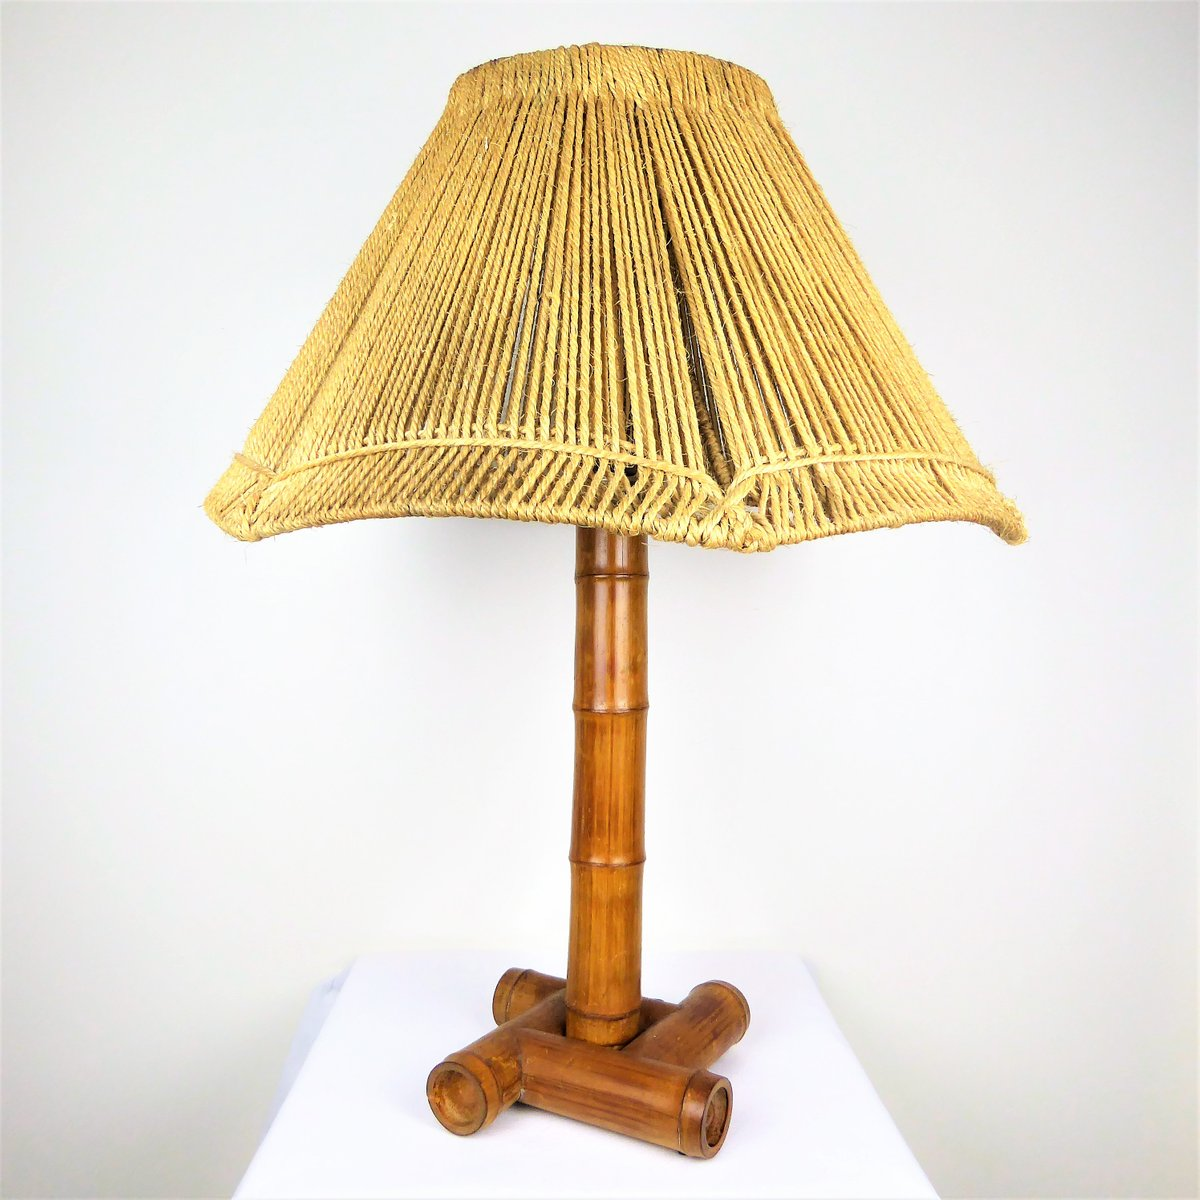 Bamboo Lamp with Rope Shade, 1950s for sale at Pamono